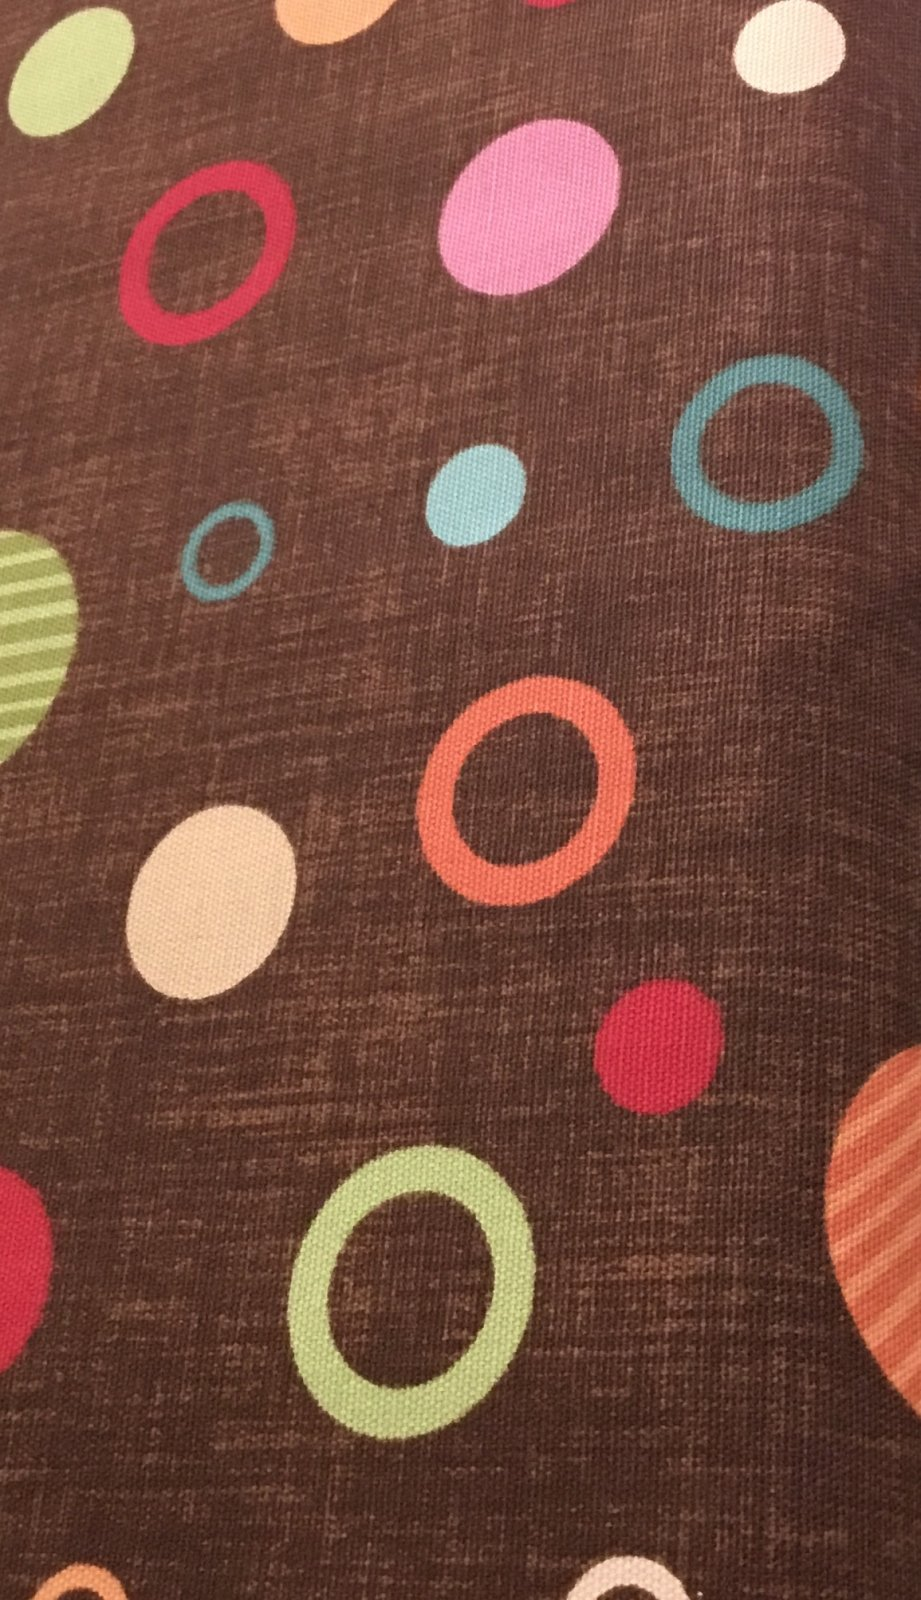 100% cotton home deco brown with colored circles